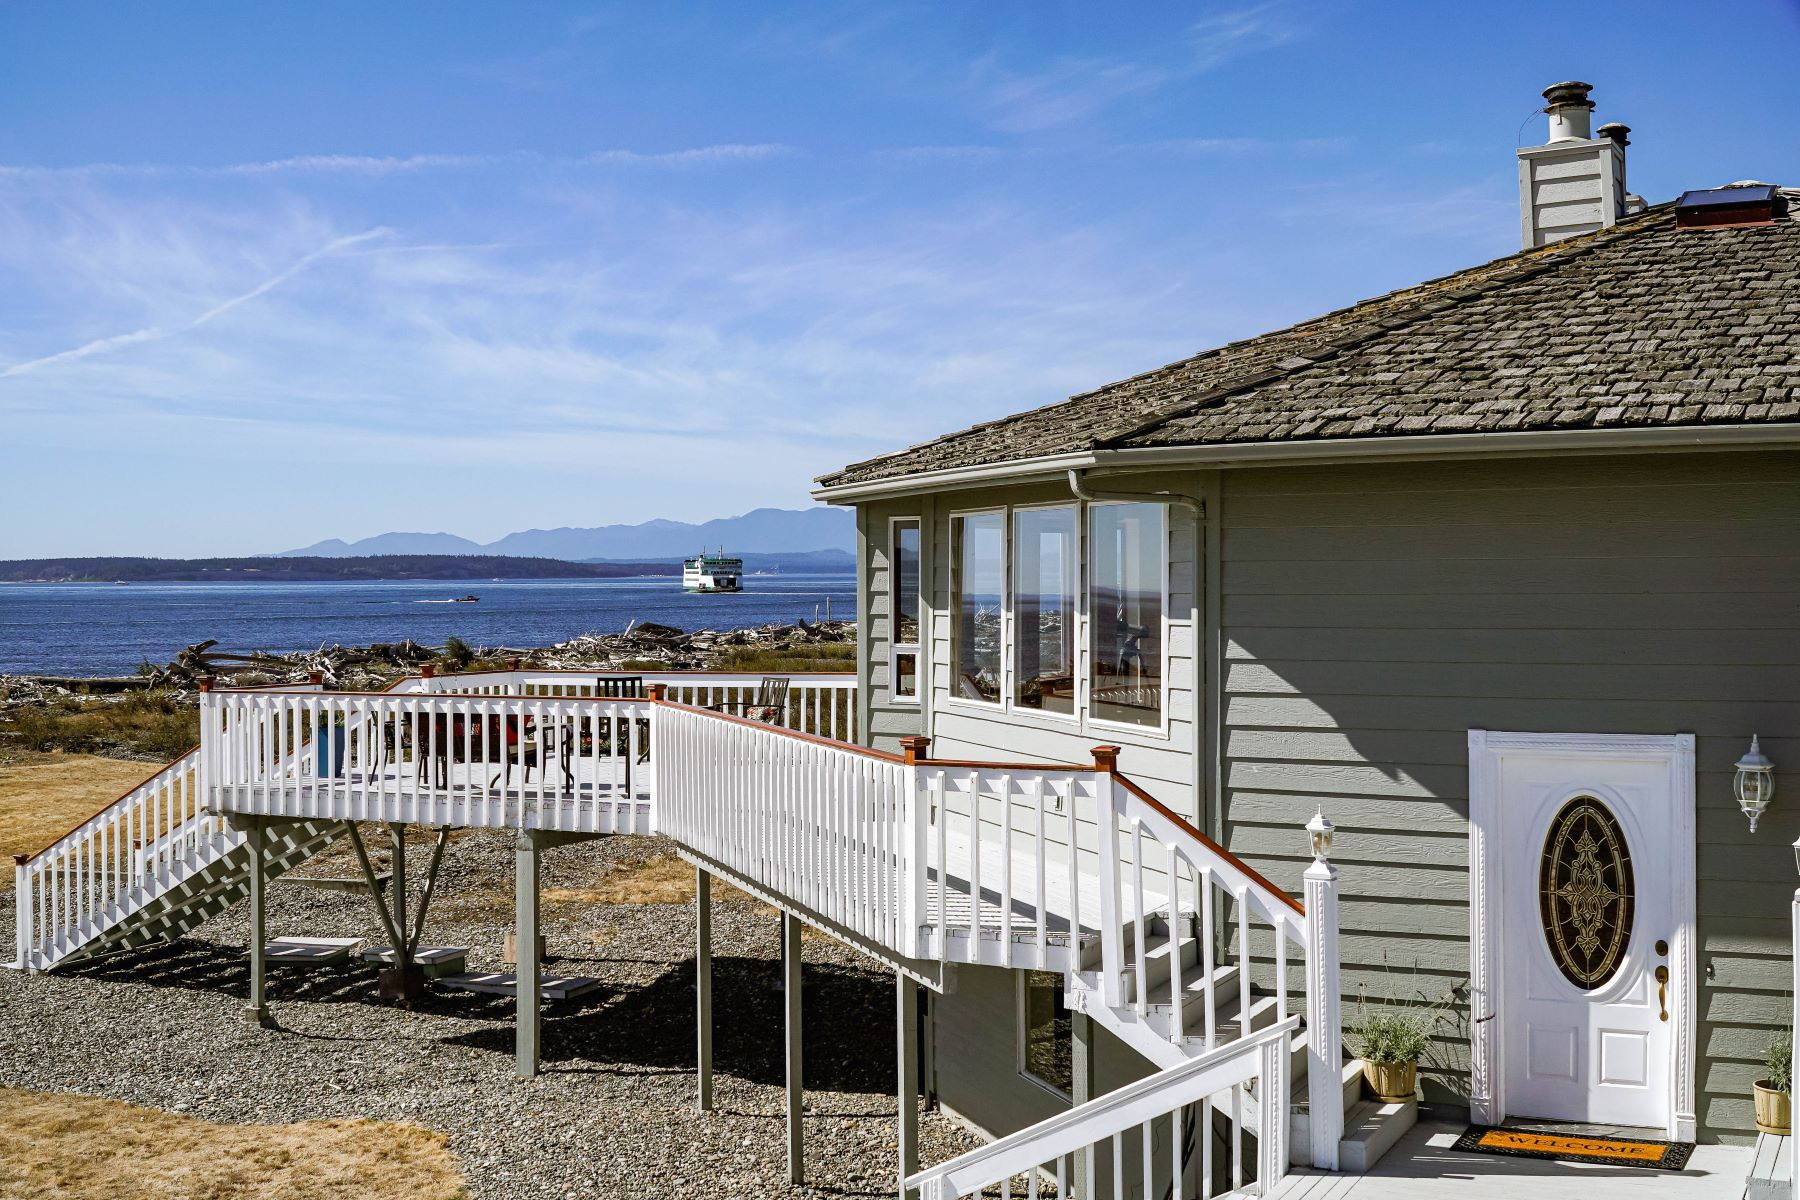 Single Family Homes for Sale at Keystone Beach Views-Whidbey Island 13322 State Route 20 Coupeville, Washington 98239 United States